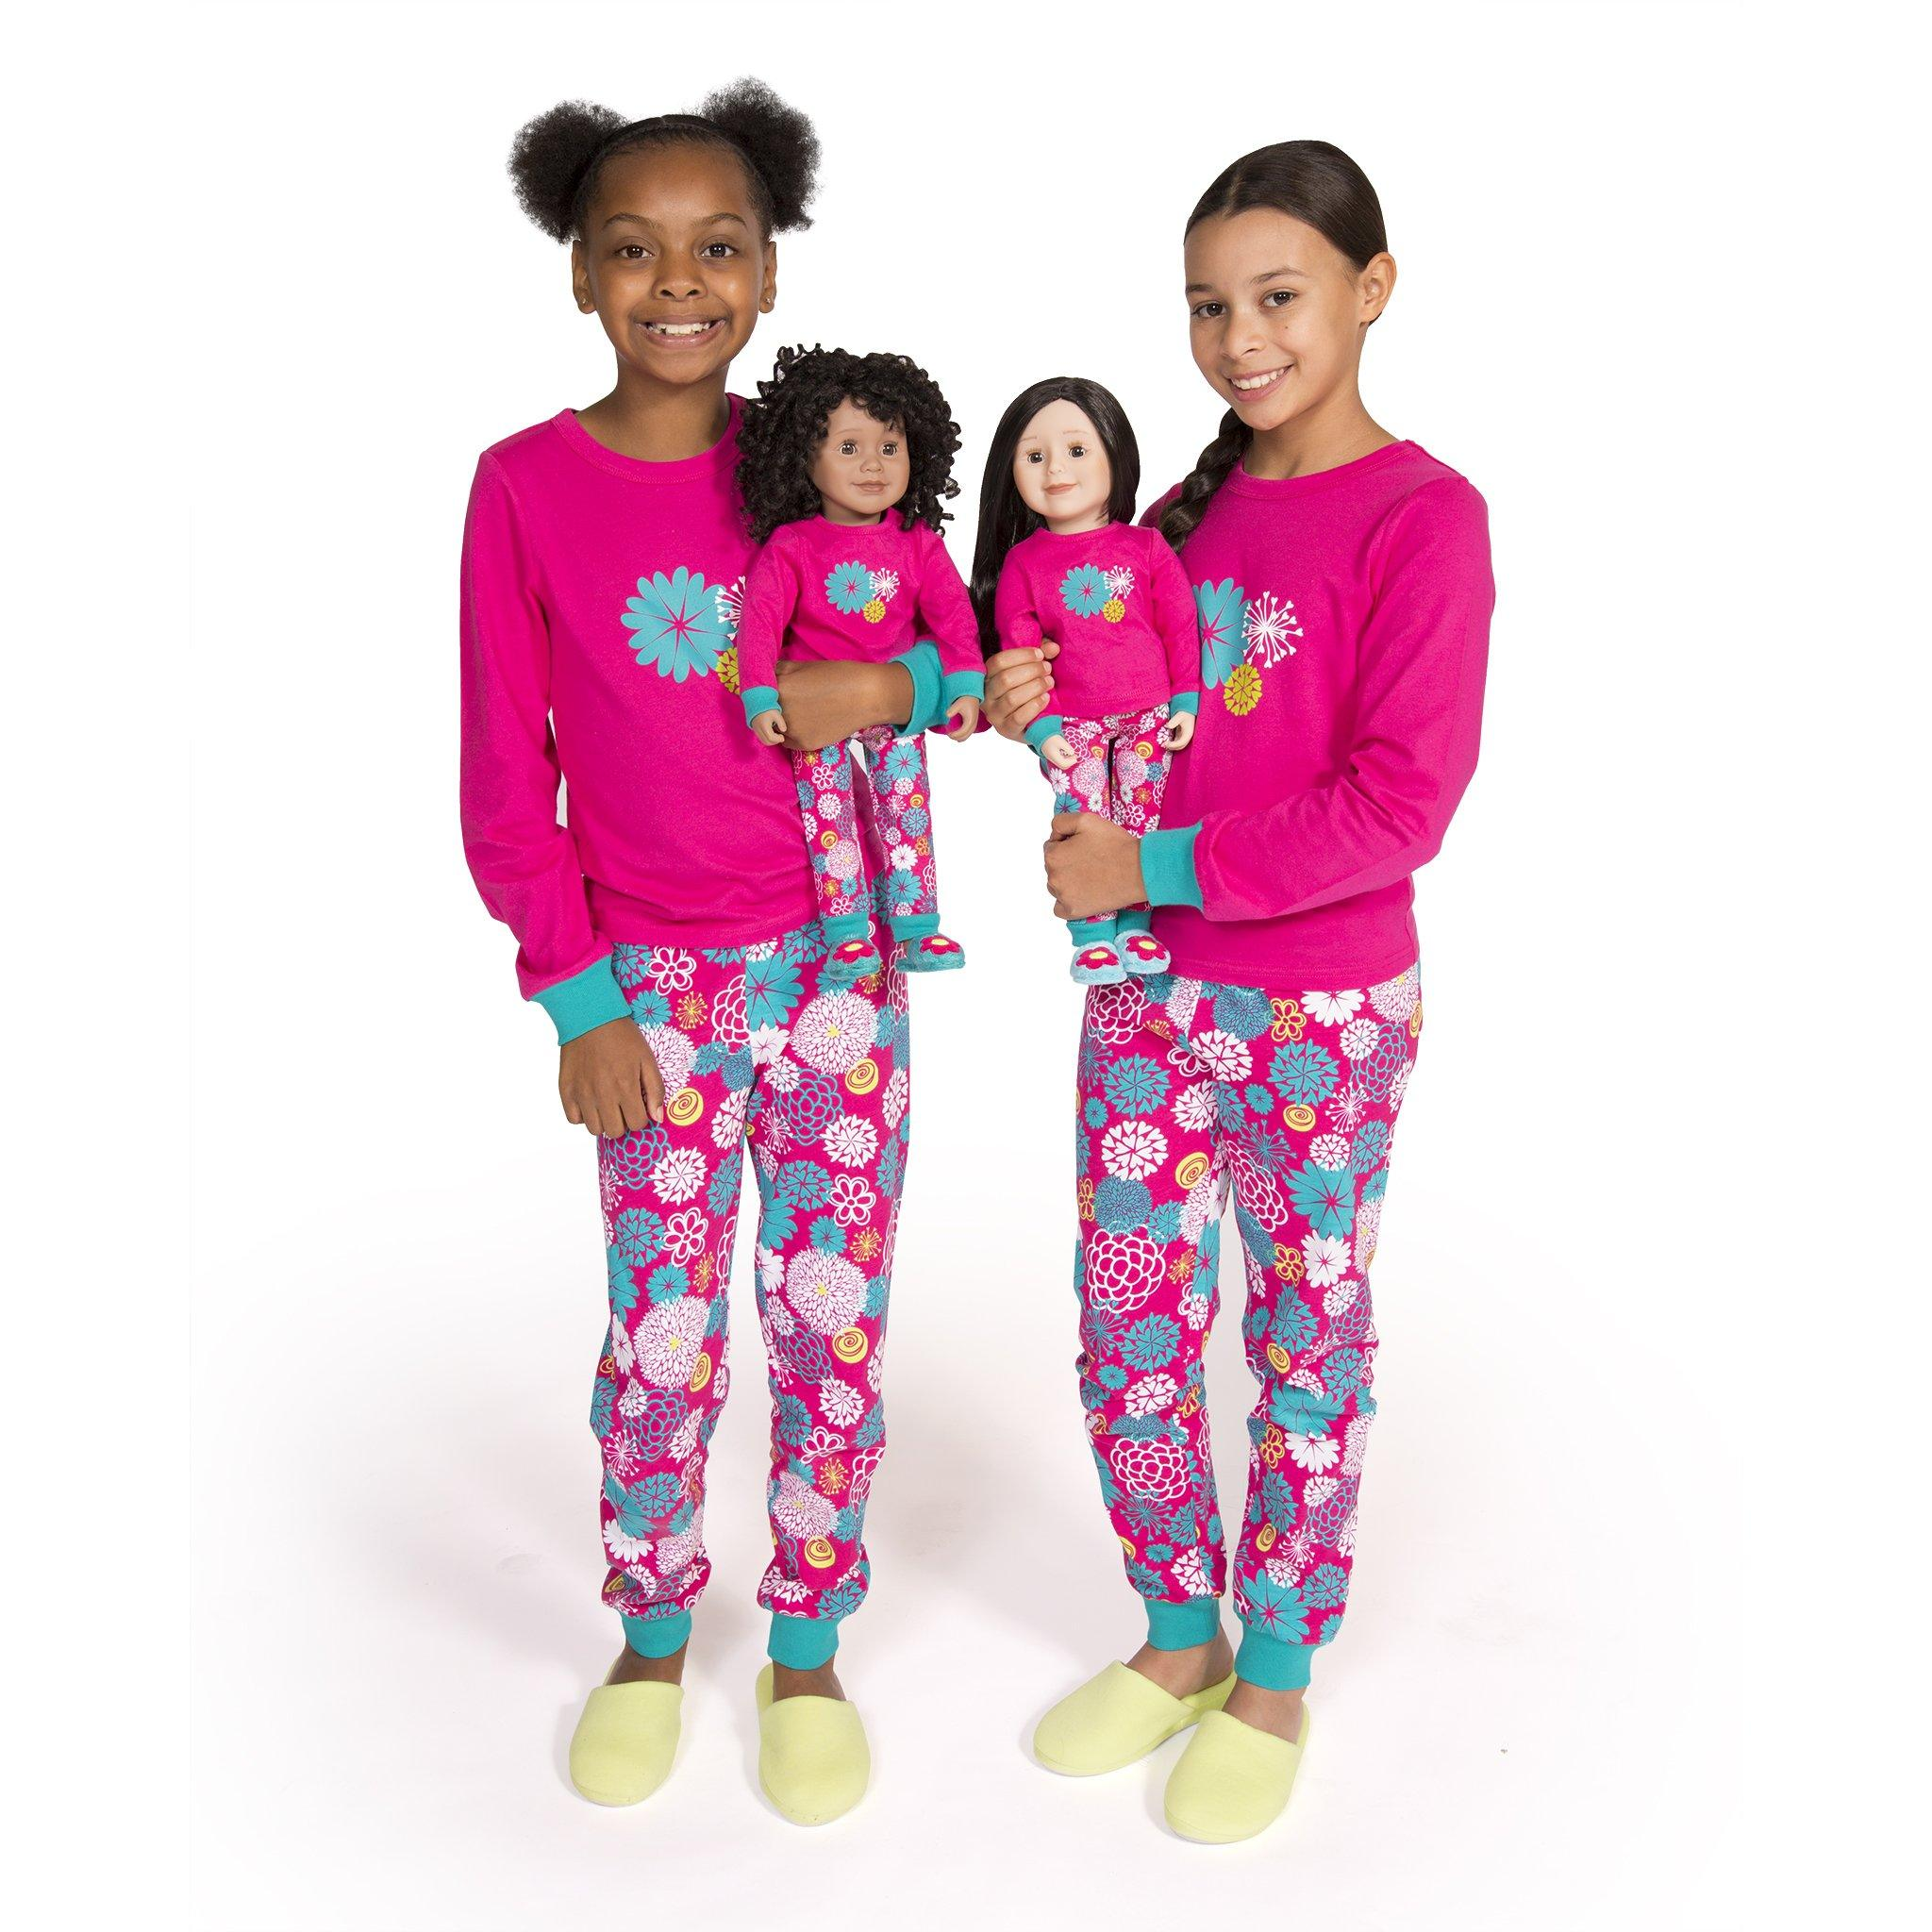 fc1065f5d8 Two girls and two 18 inch dolls wearing matching pajamas from Maplelea  Canadian Girl.